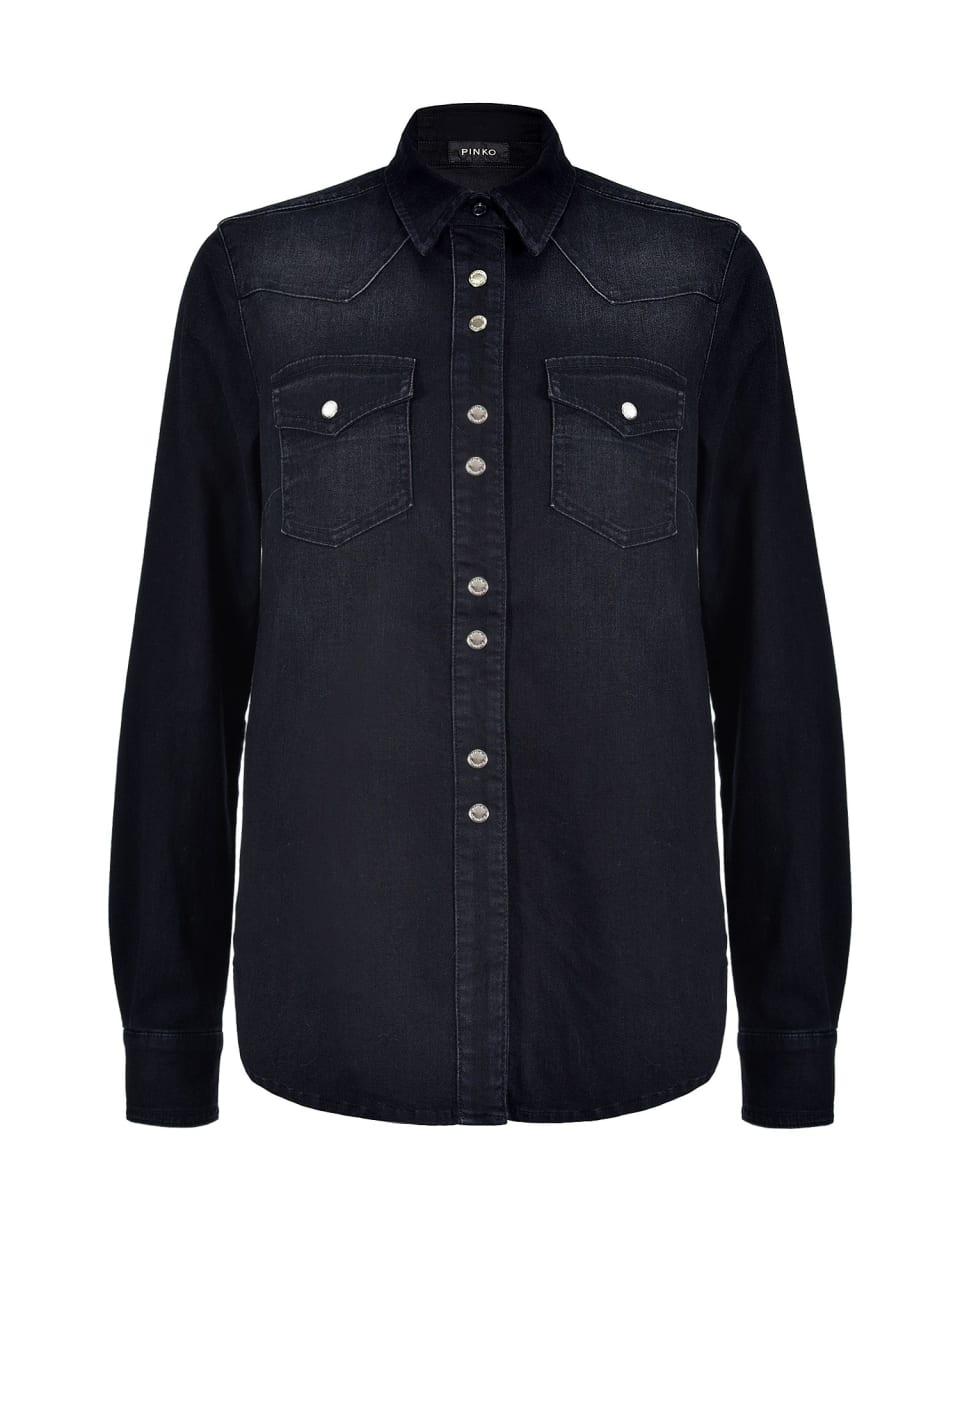 Lightweight twill shirt - Pinko